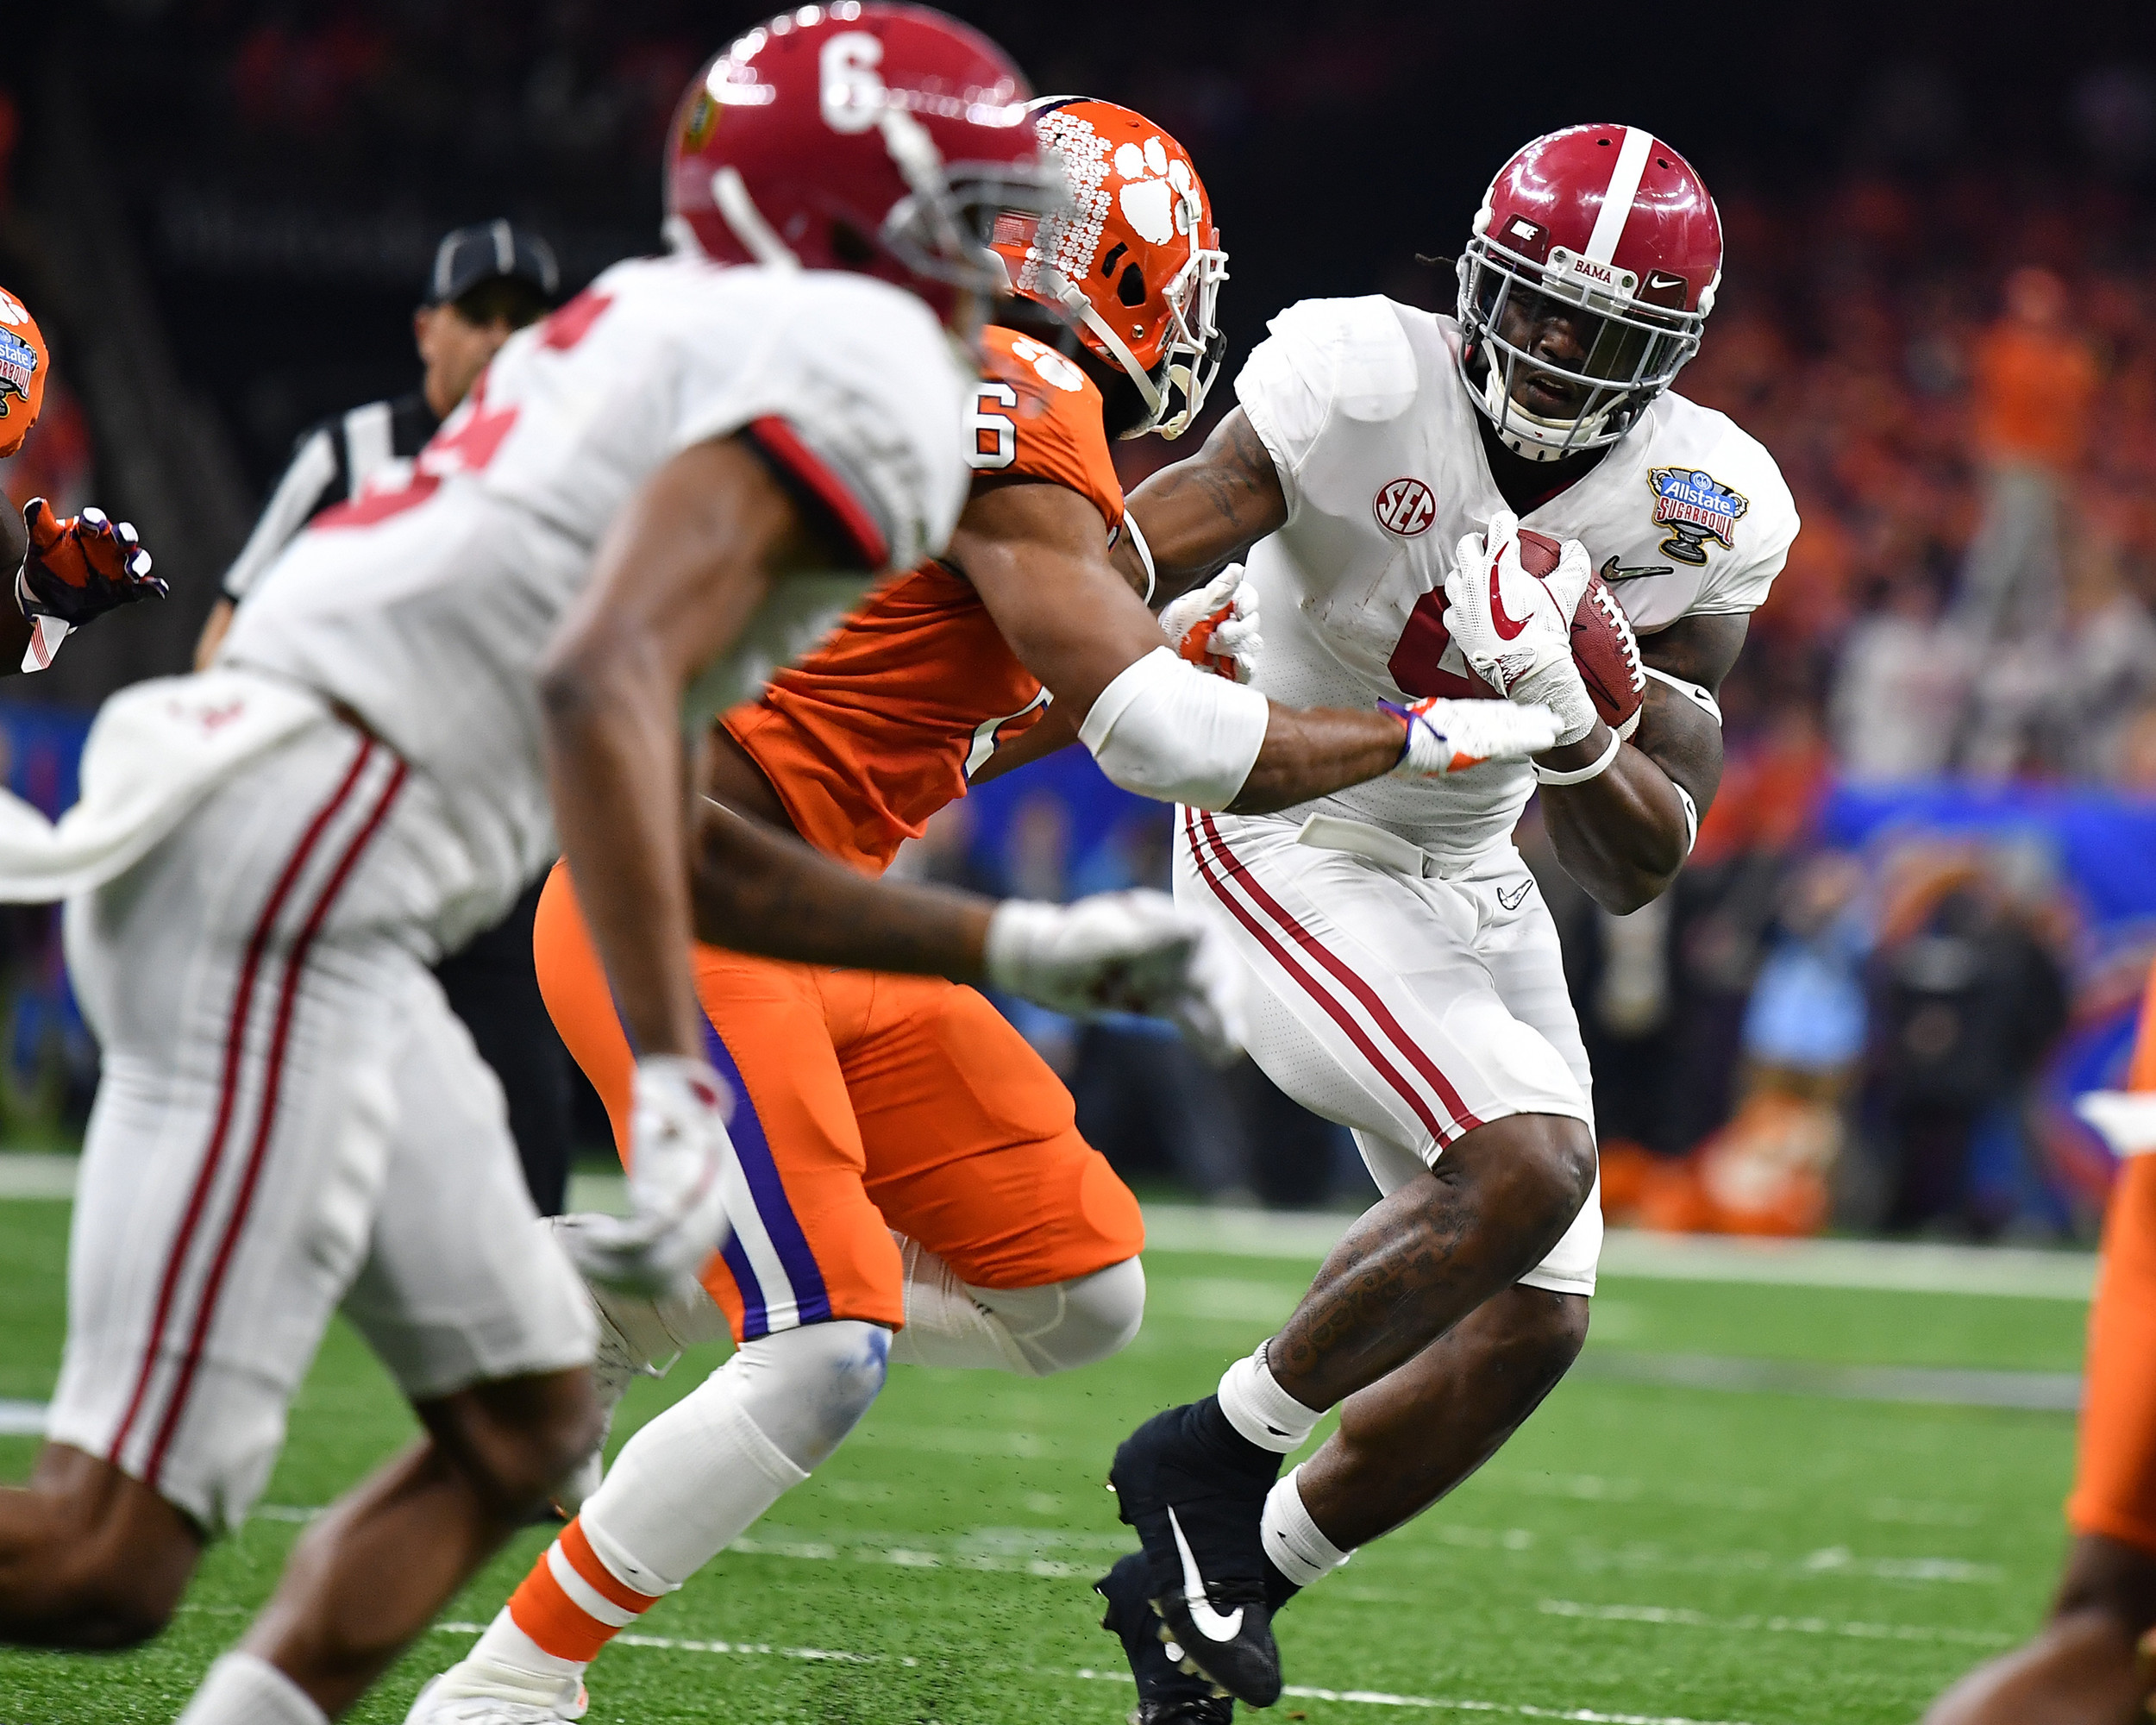 Alabama Crimson Tide running back Bo Scarbrough (9) looks for room to fun in the first half of the 2018 AllState Sugar Bowl on Jan. 1, 2018, at the Mercedes-Benz SuperDome in New Orleans, La. Alabama won the game 24-6. (Photo by Lee Walls)